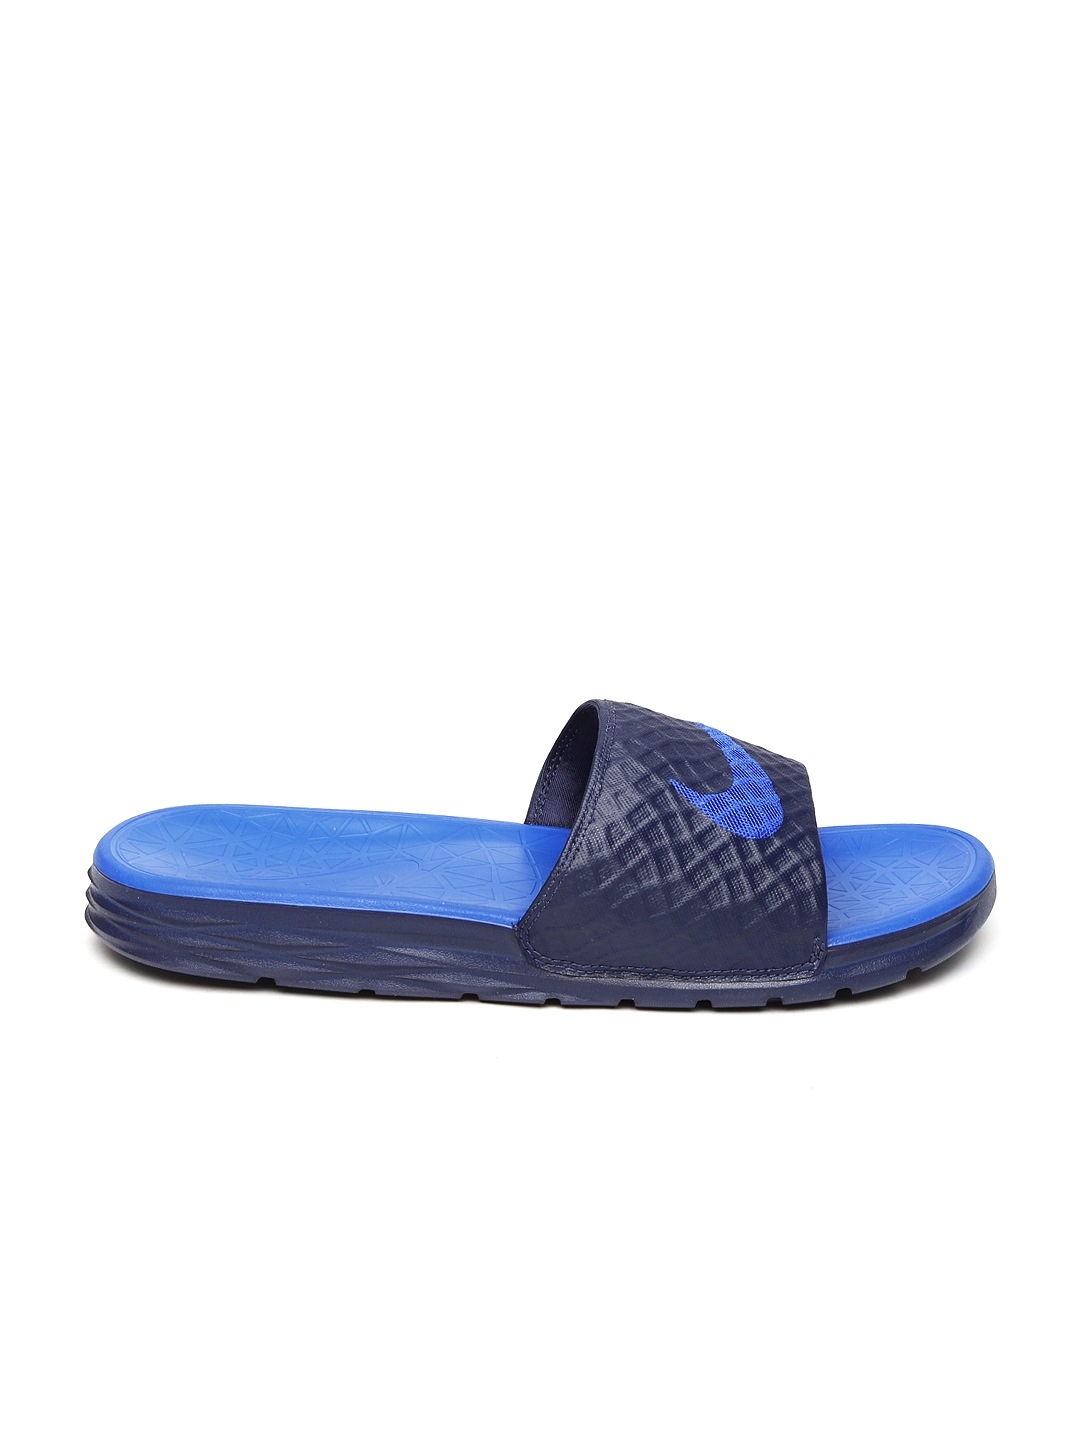 Description: Gumbies Islander flip flops protect your feet with a fresh, fun design. Flip flops feature recycled rubber soles, natural fibers, cotton straps, flexible toe posts, and will shape to .